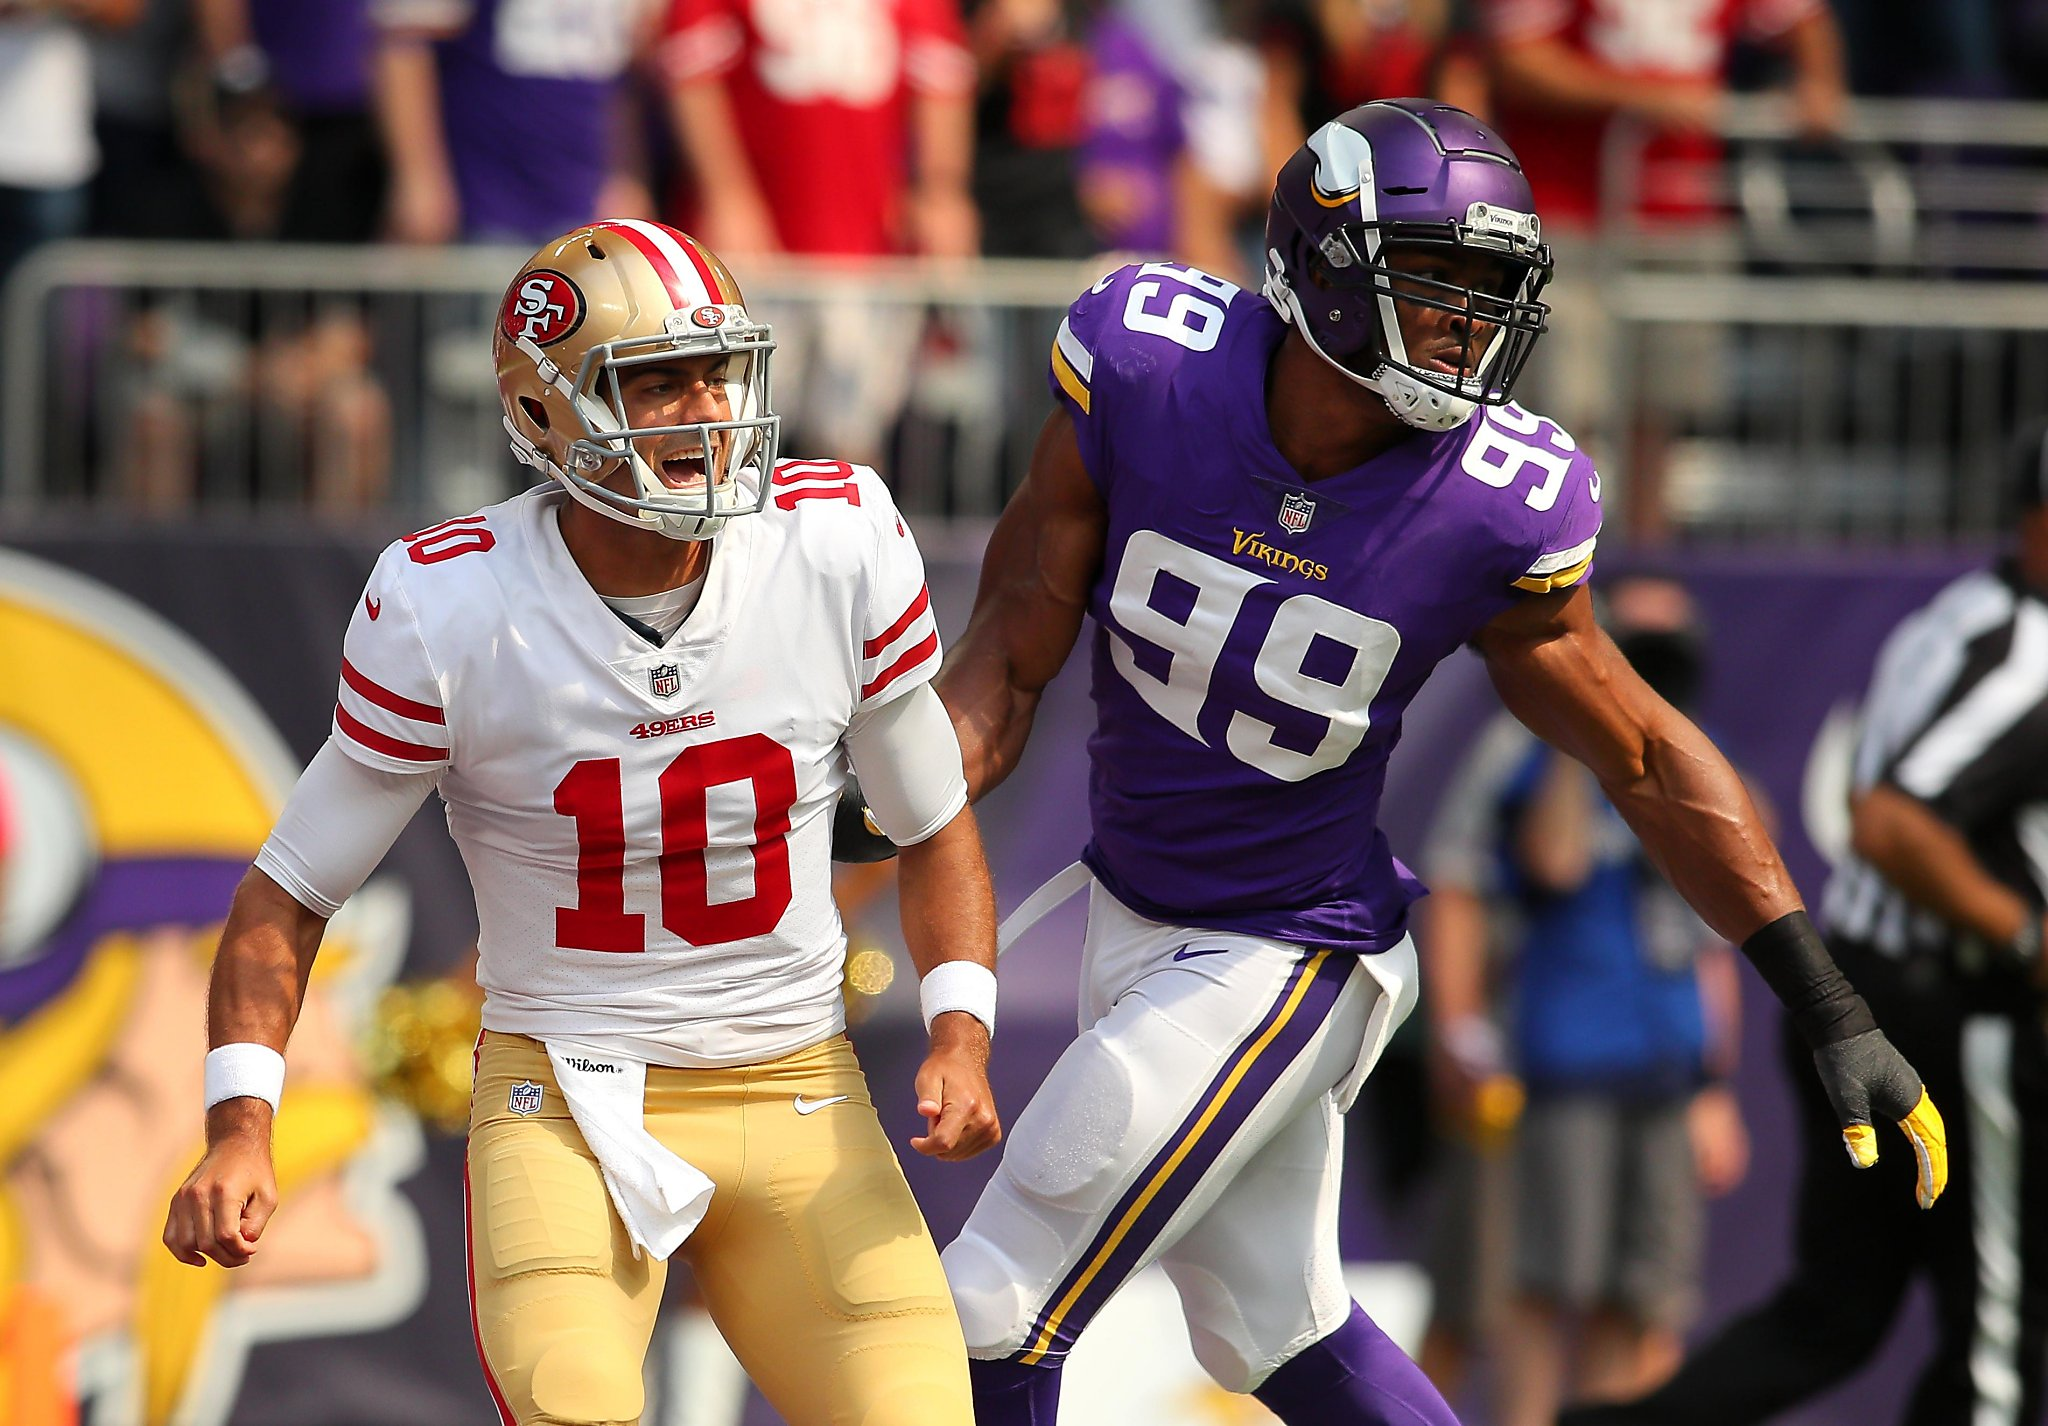 https://www.sfgate.com/49ers/article/49ers-Vikings-playoffs-Divisional-round-start-date-14951386.php